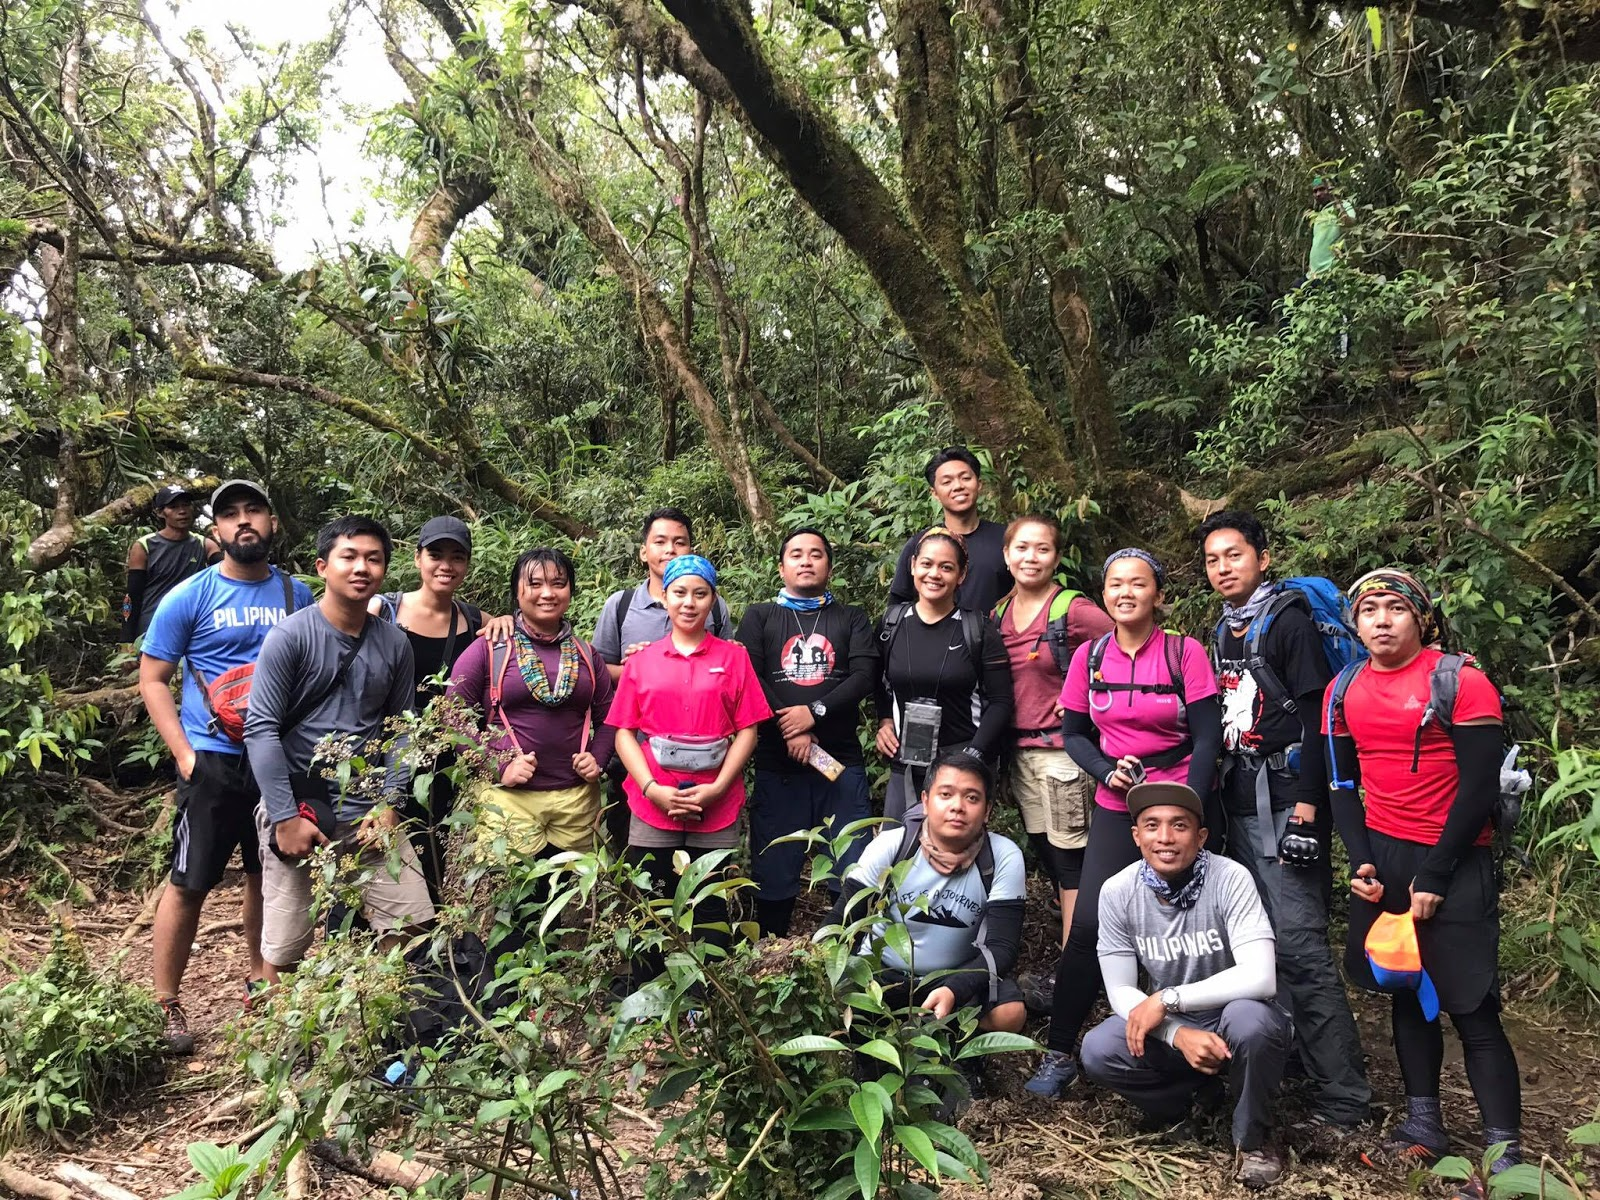 The climbing team headed and organized by TrailSeekers' Glaiza Fidel (3rd from left wearing pink tshirt and black sleeves)